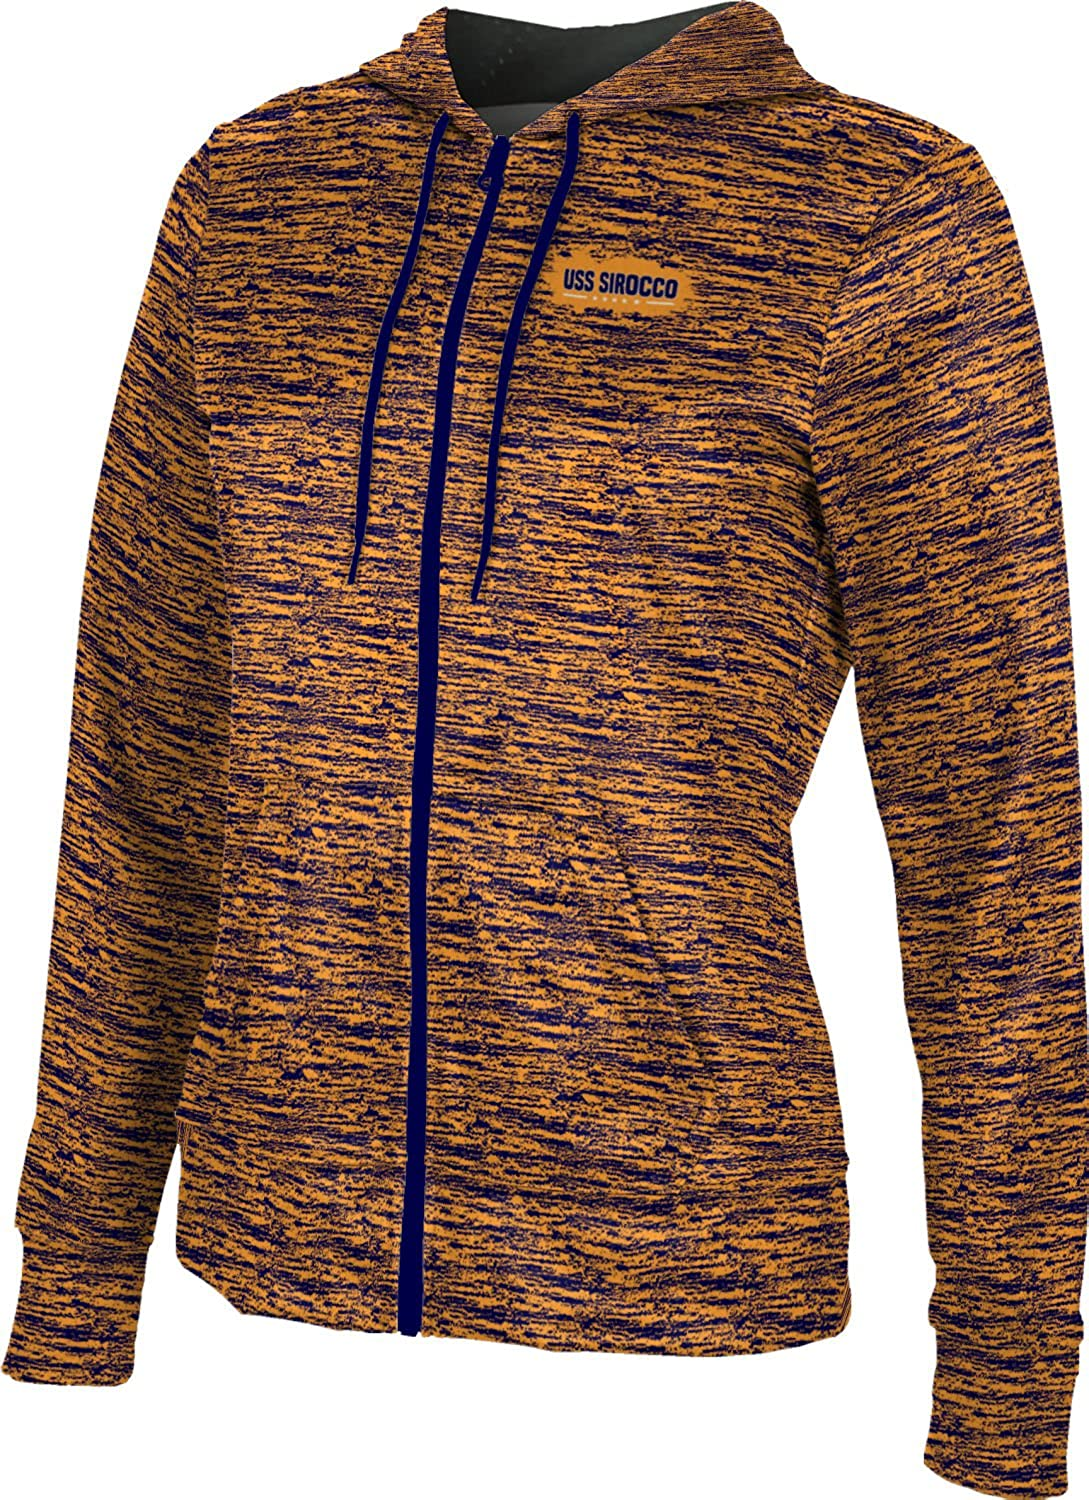 ProSphere Women's USS Sirocco Military Brushed Fullzip Hoodie